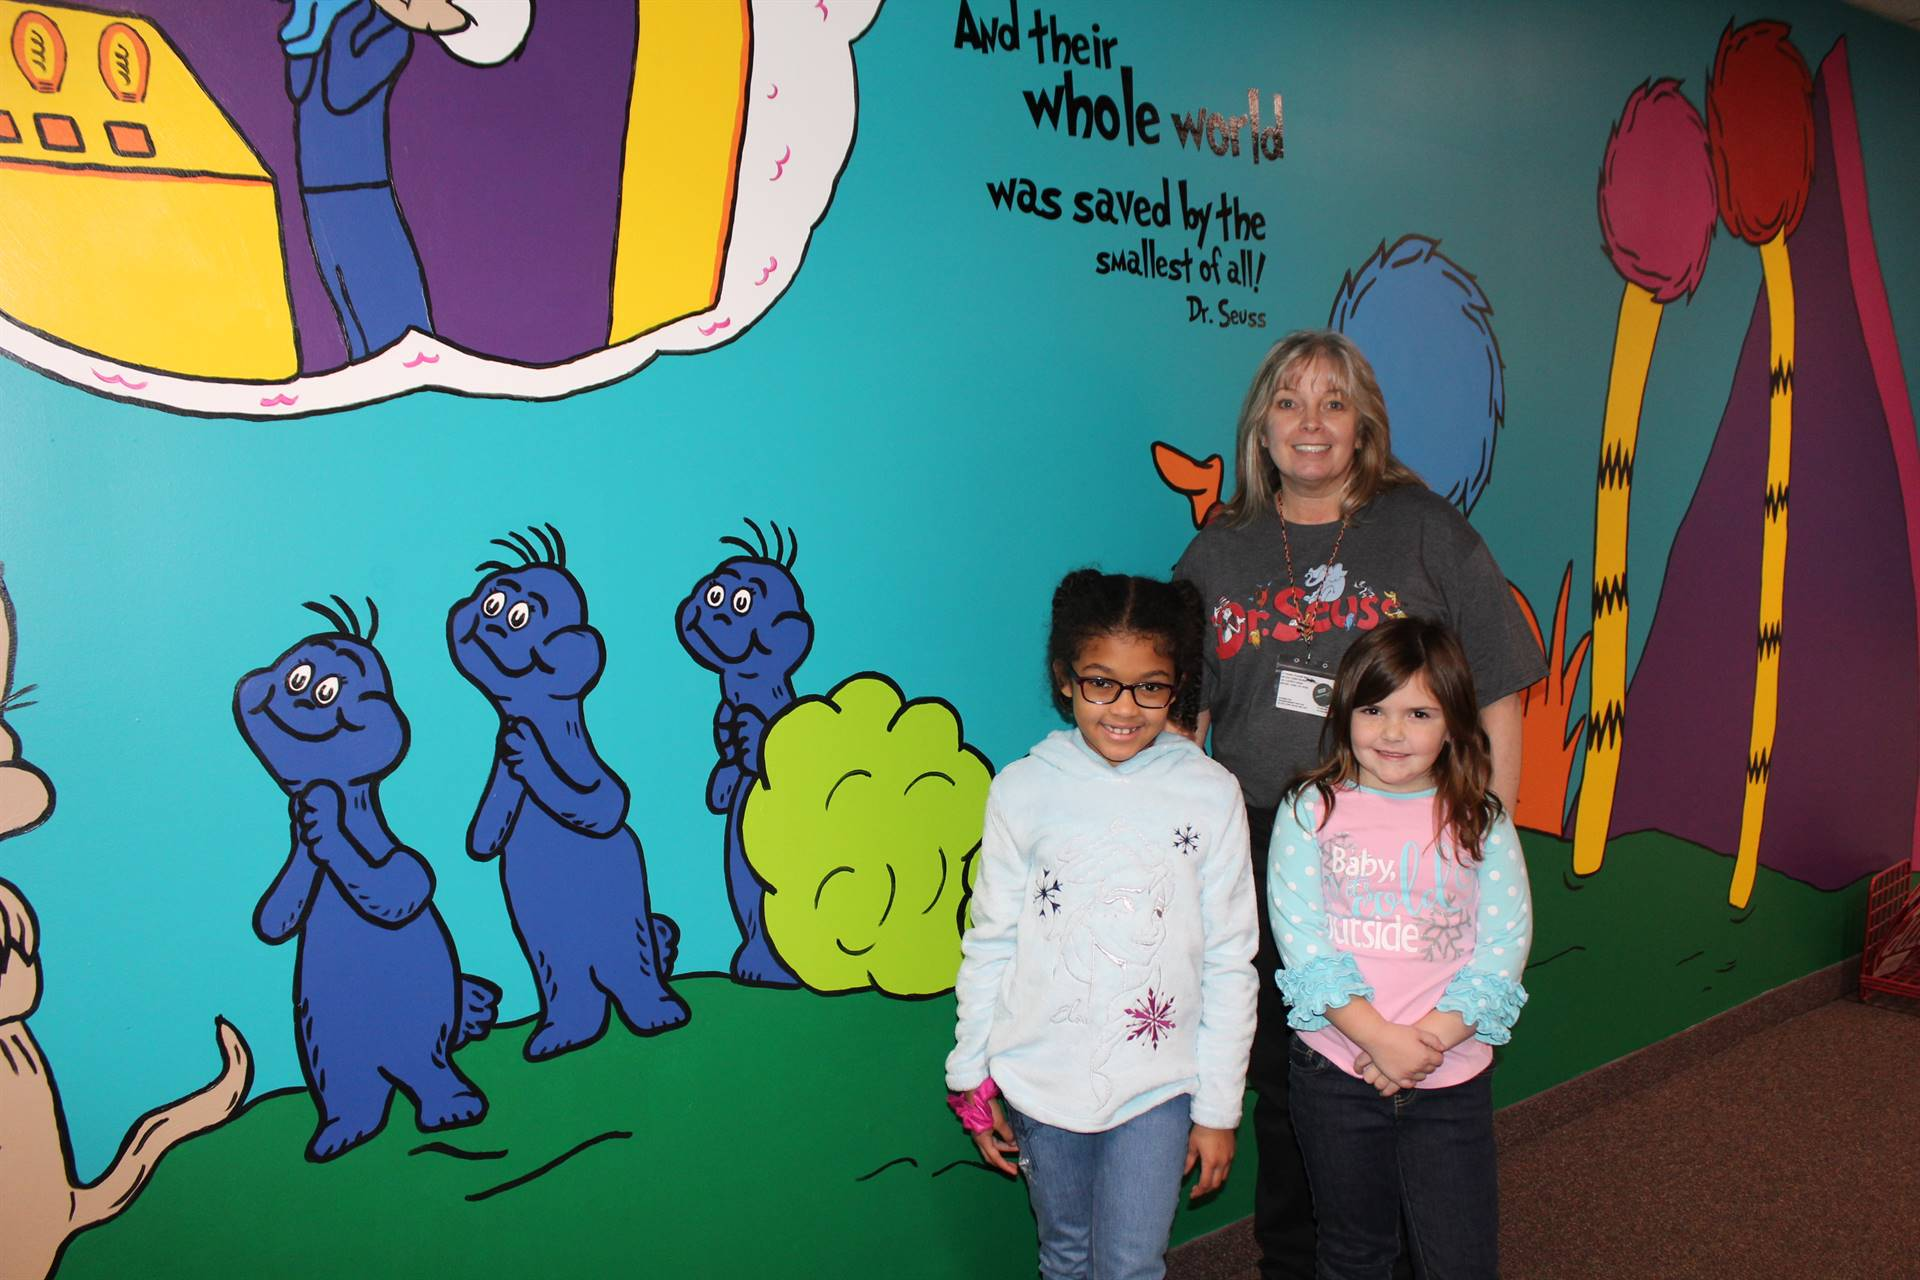 Mrs. Eckert-Graffam and two students in front of the wall